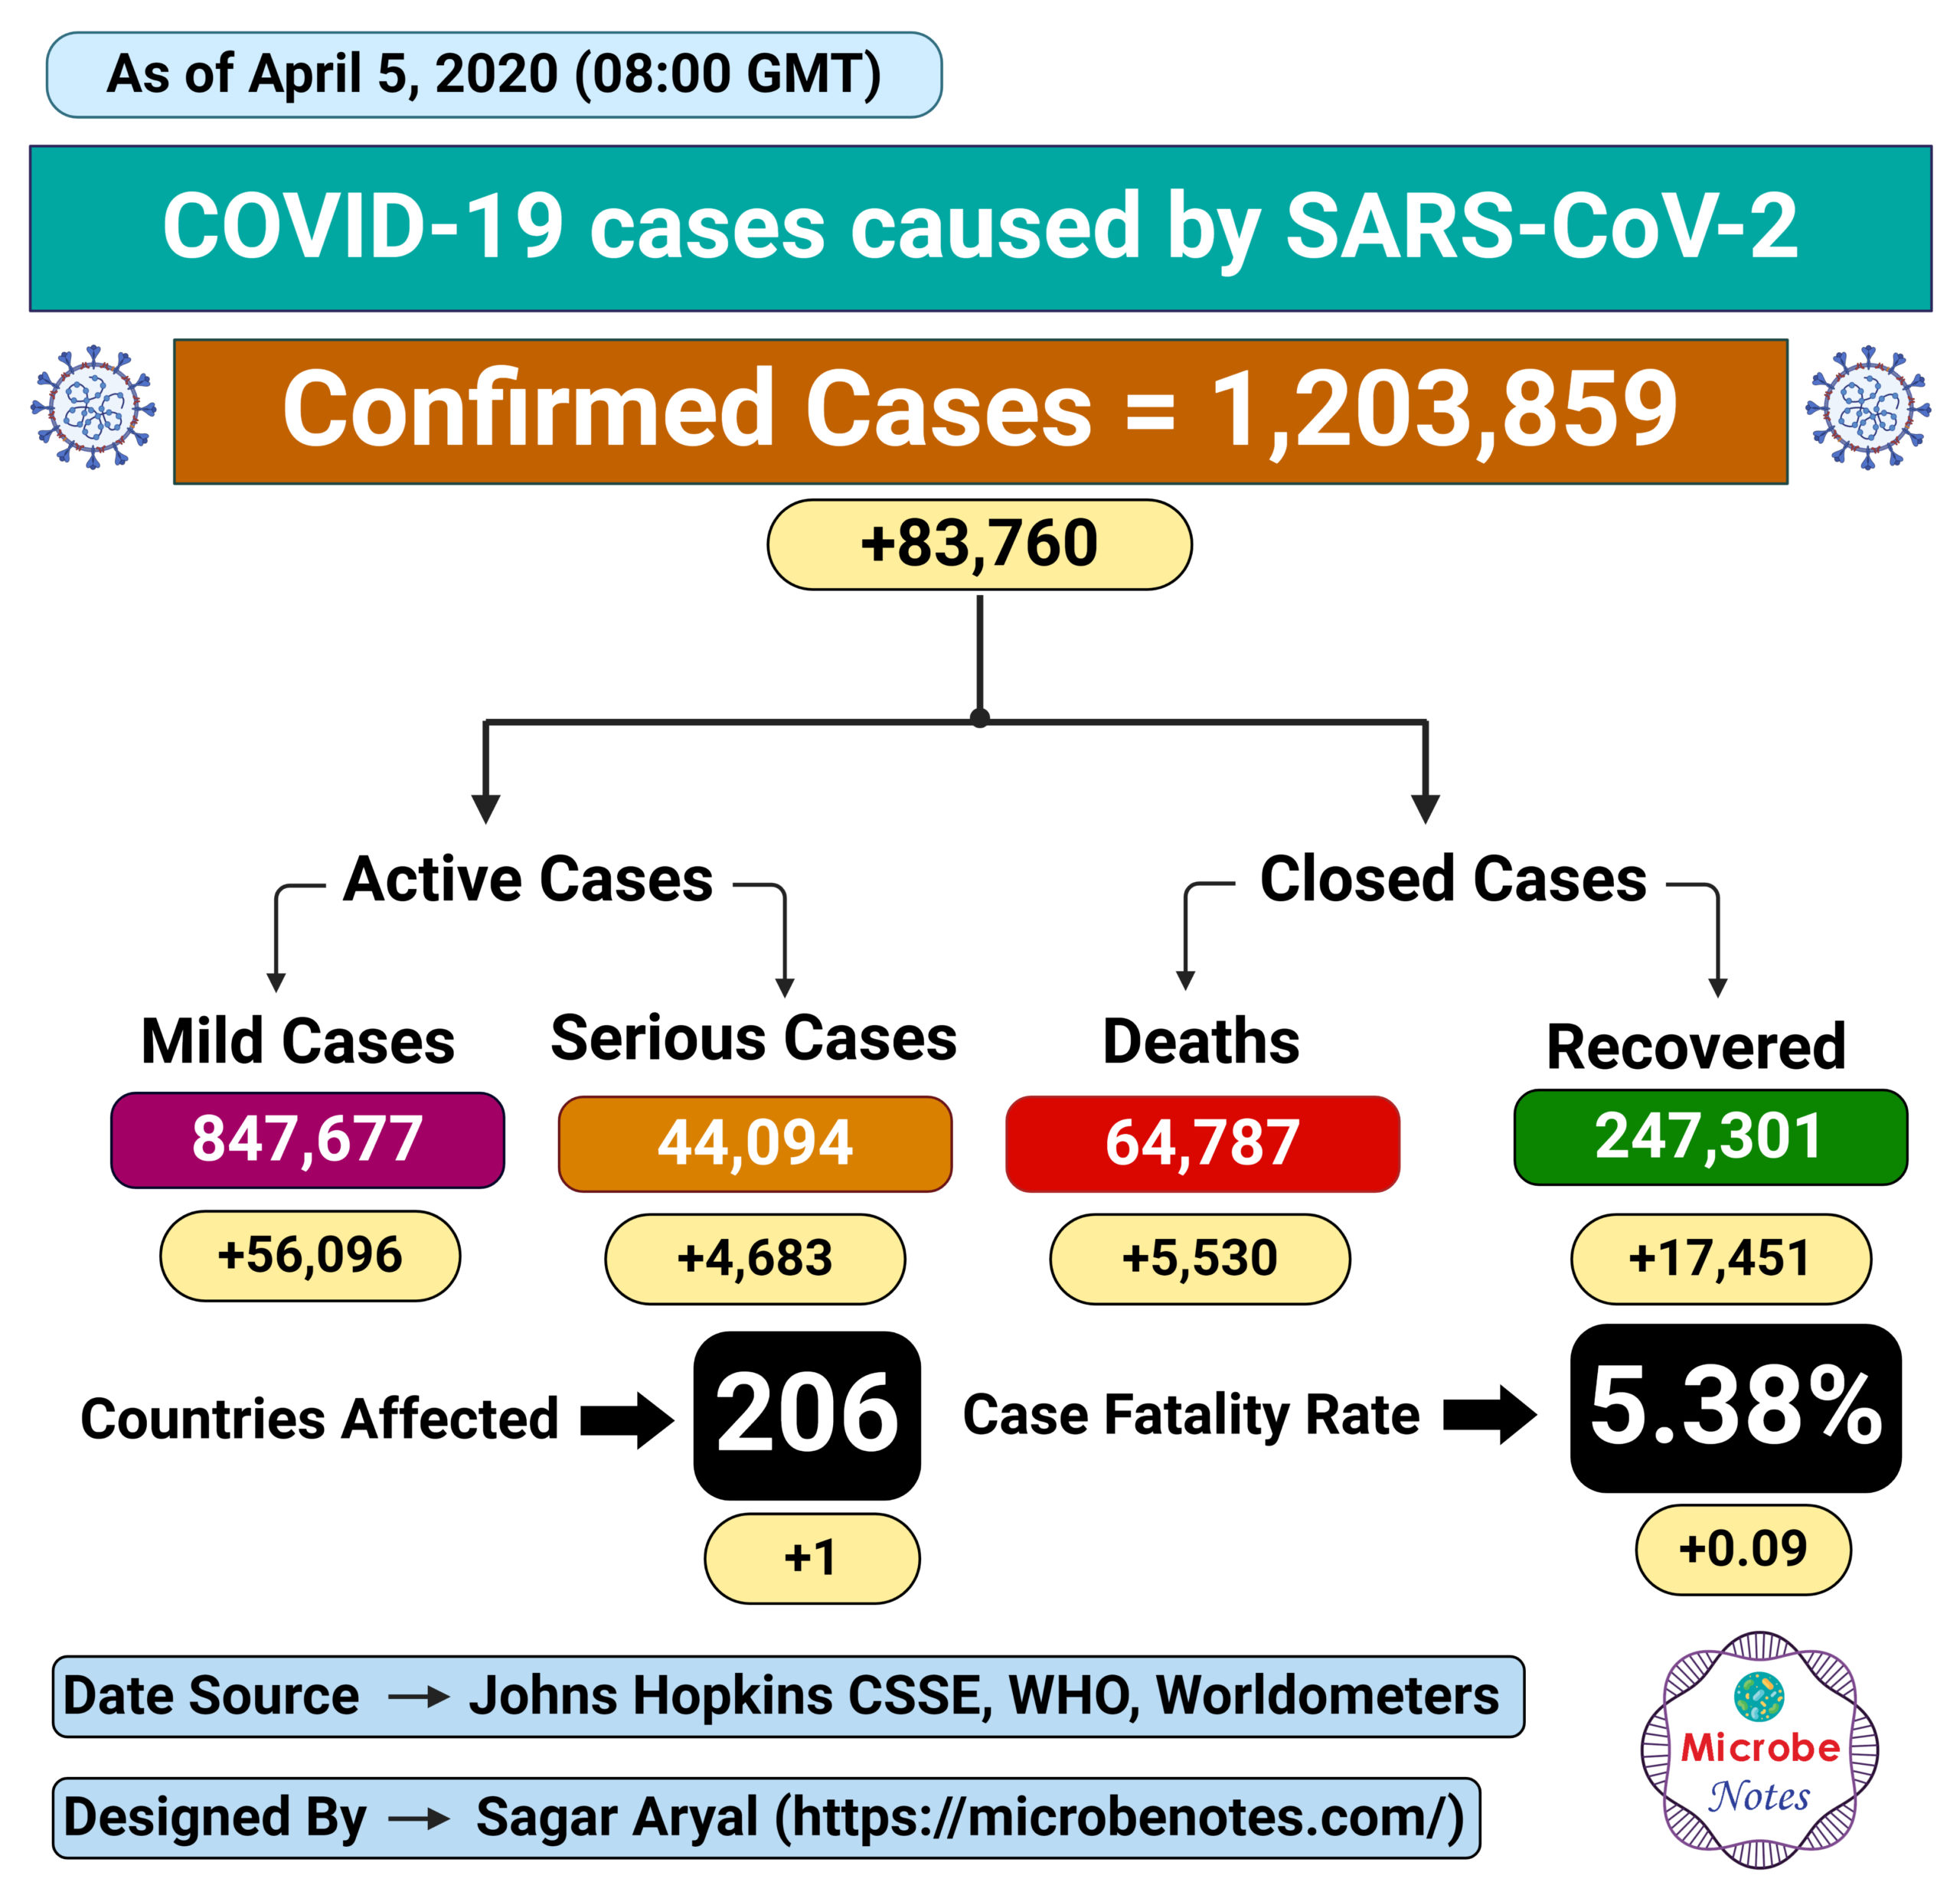 Epidemiology of COVID-19 caused by SARS-CoV-2 as of April 5, 2020